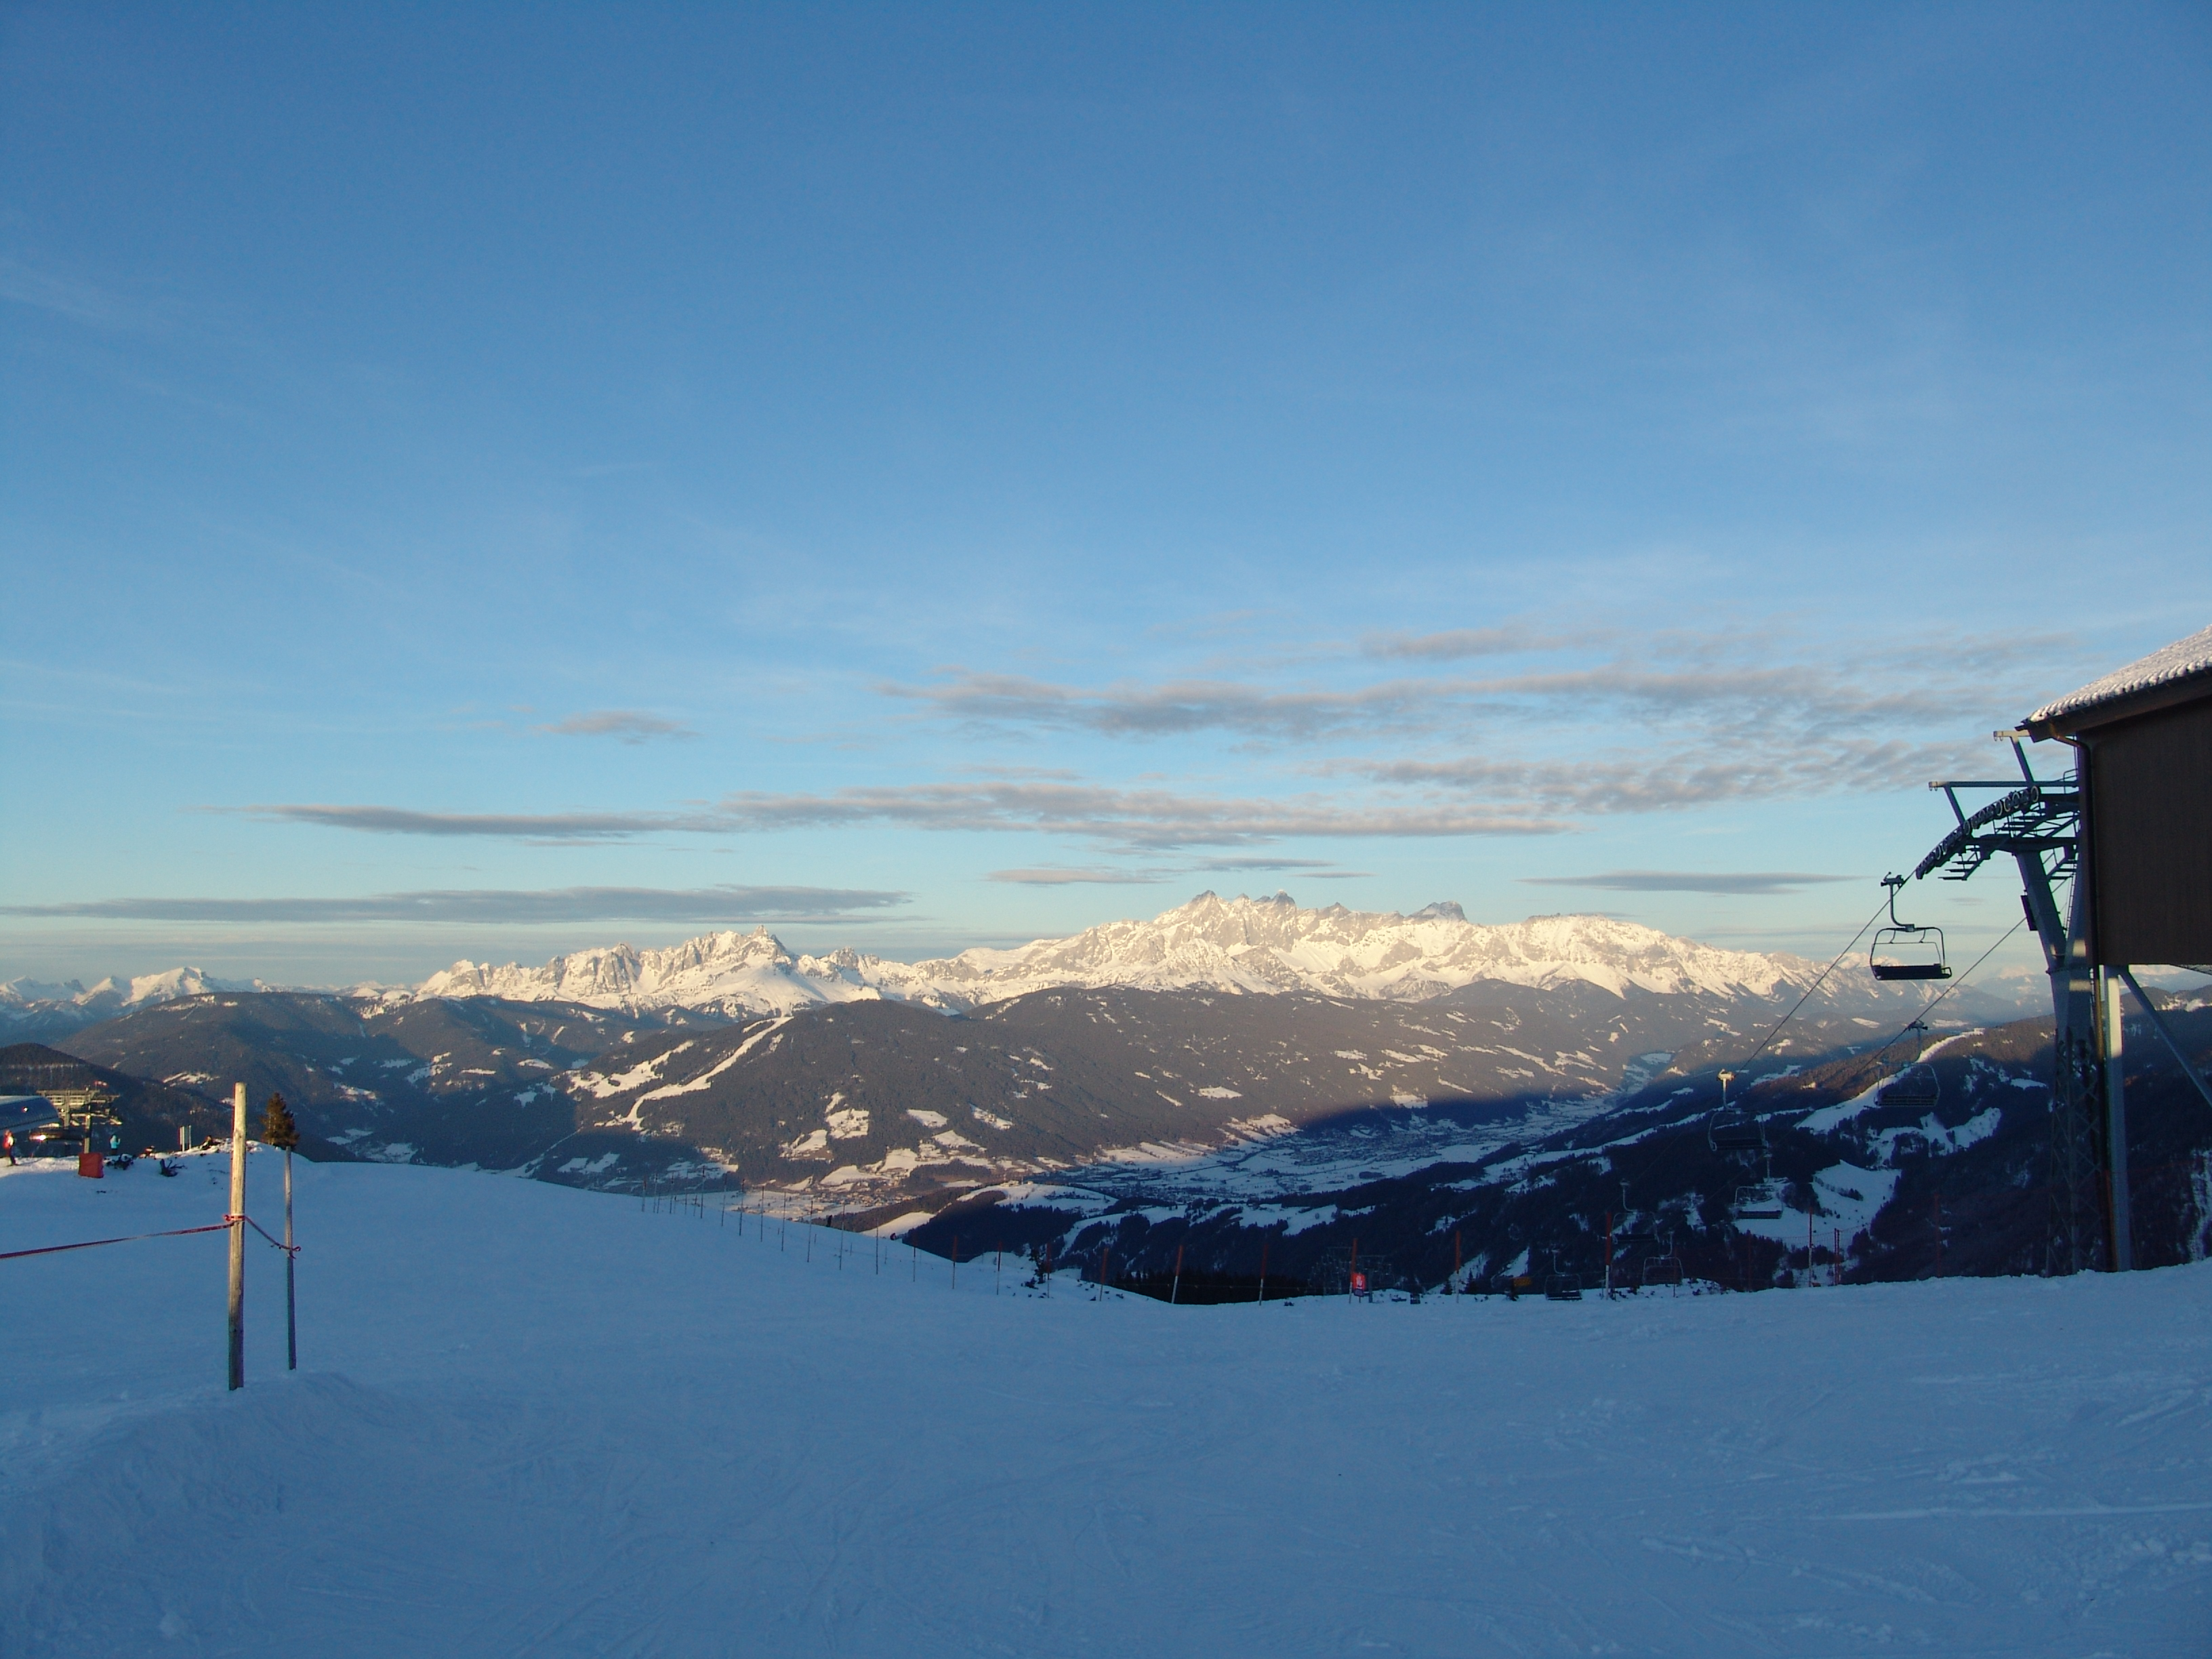 flachau ski resort info, weather forecast, snow forecast, snow alert